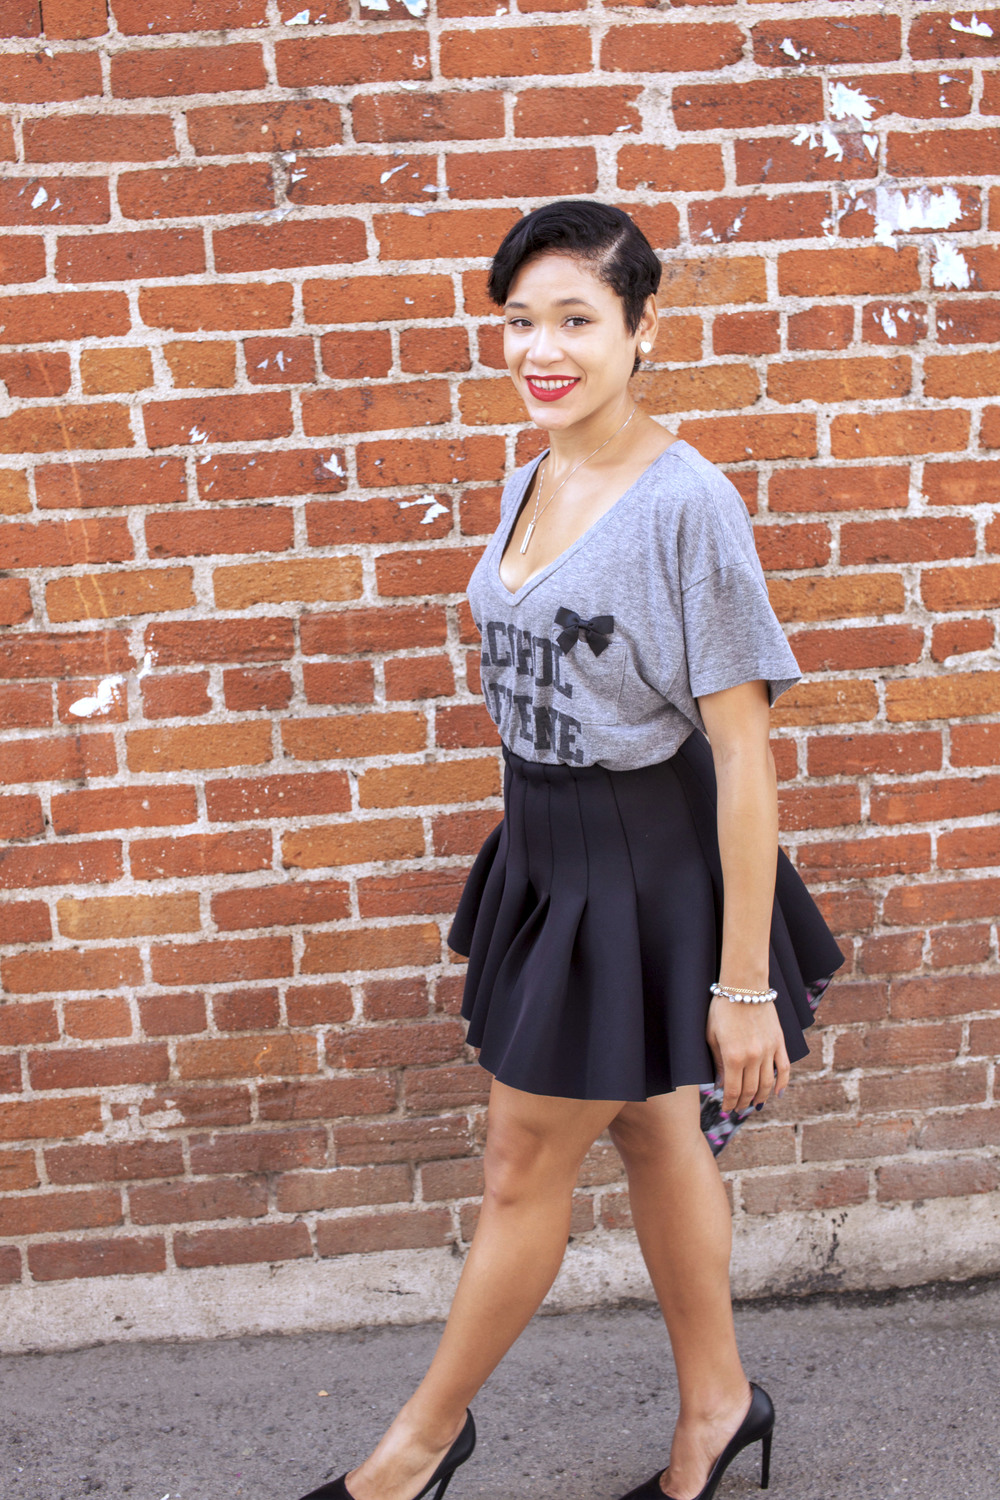 H & M Skirt ( similar ), Unknown Shirt ( similar ), Jeffrey Campbell  'Dulce'  Heel, L.A.M.B Purse